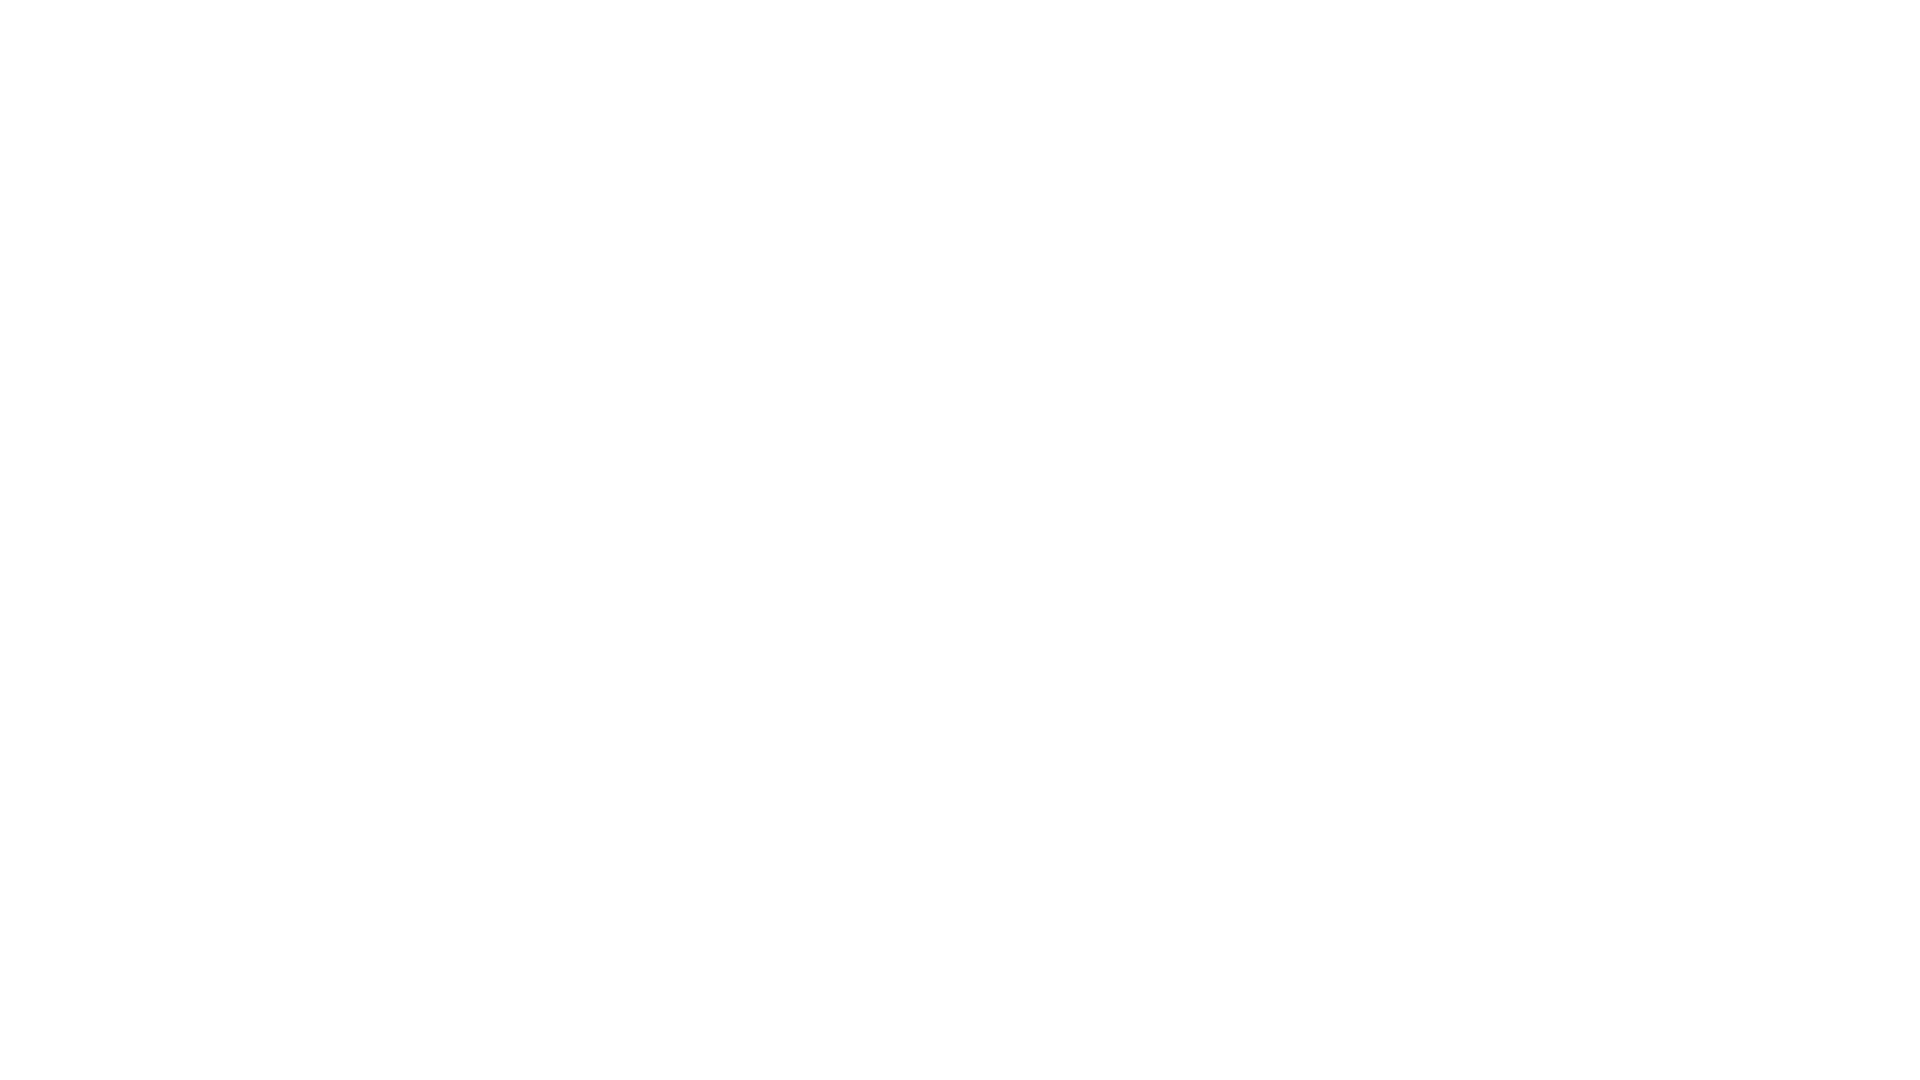 DocsMX OFFICIAL SELECTION 2019